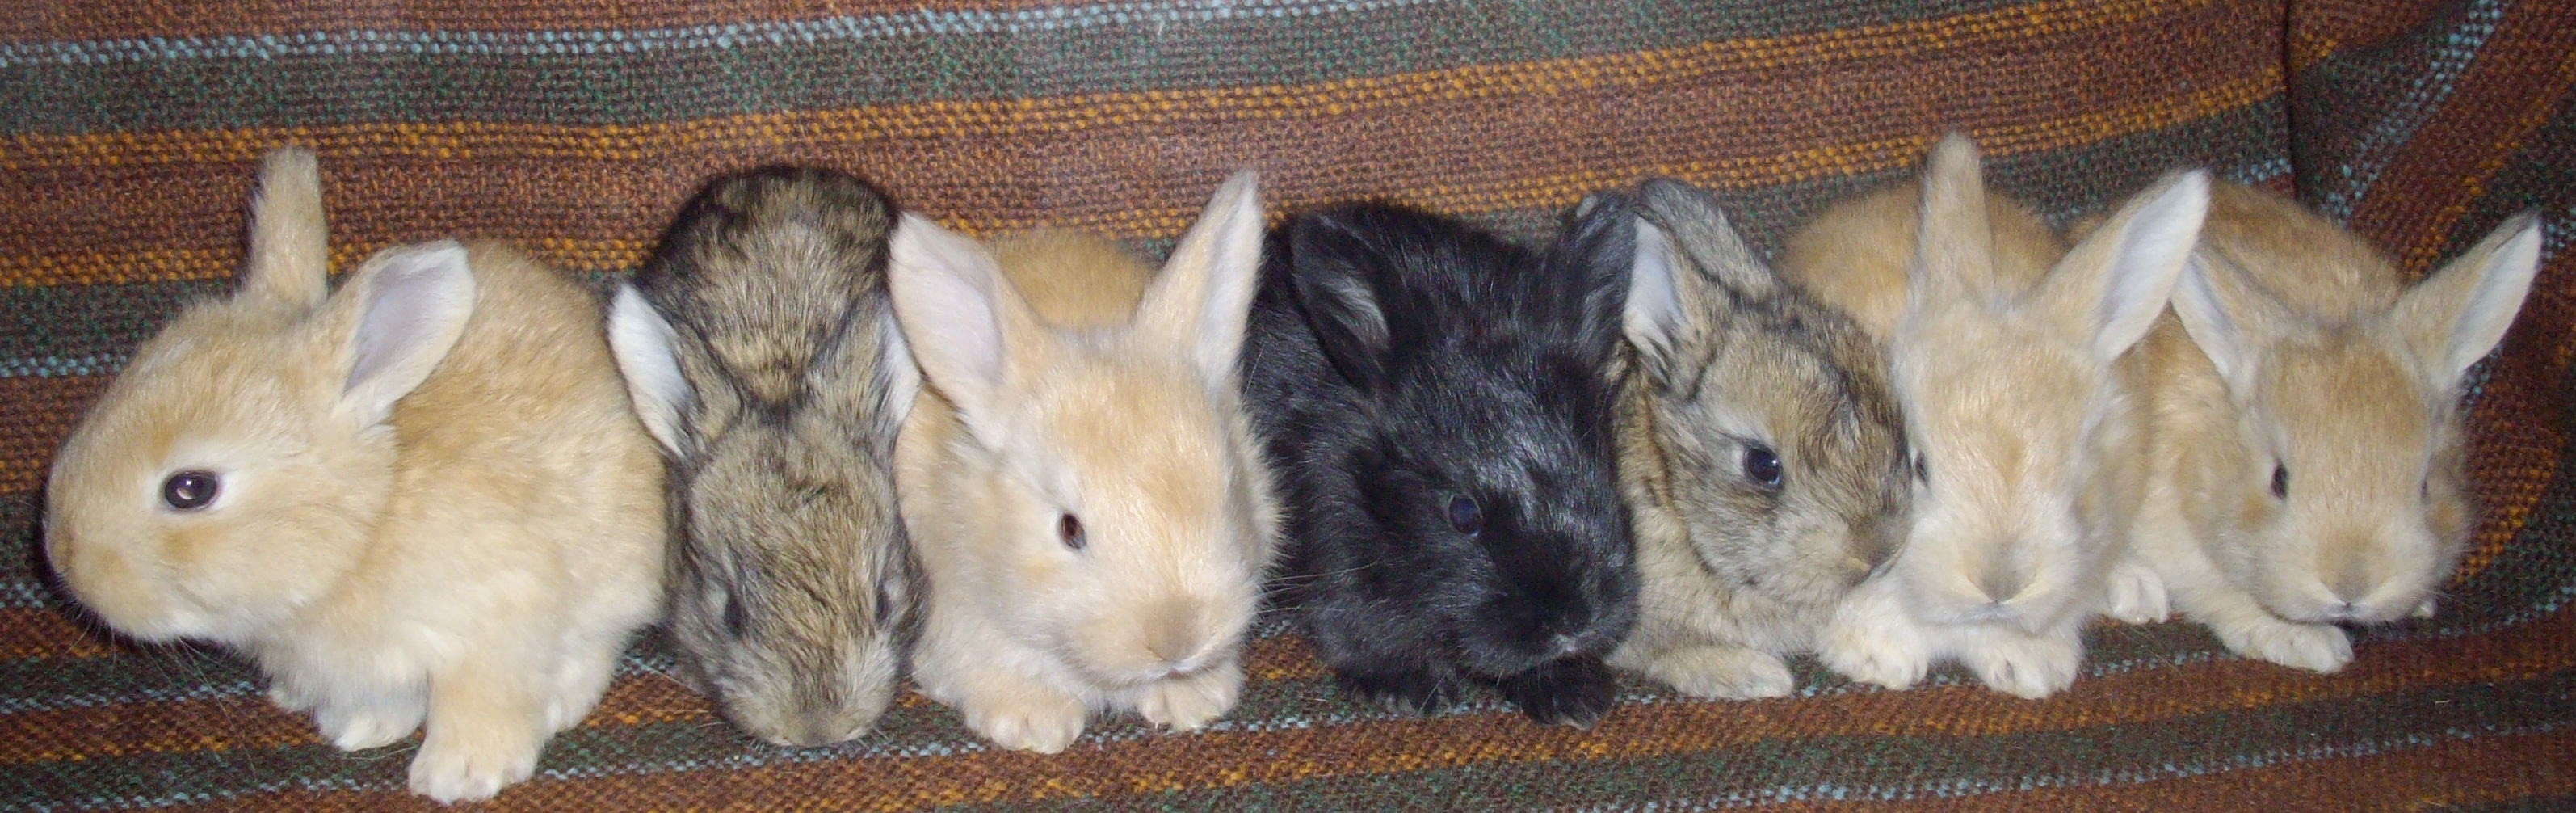 Breeding French Angora Rabbits for Color, What You Need to ...